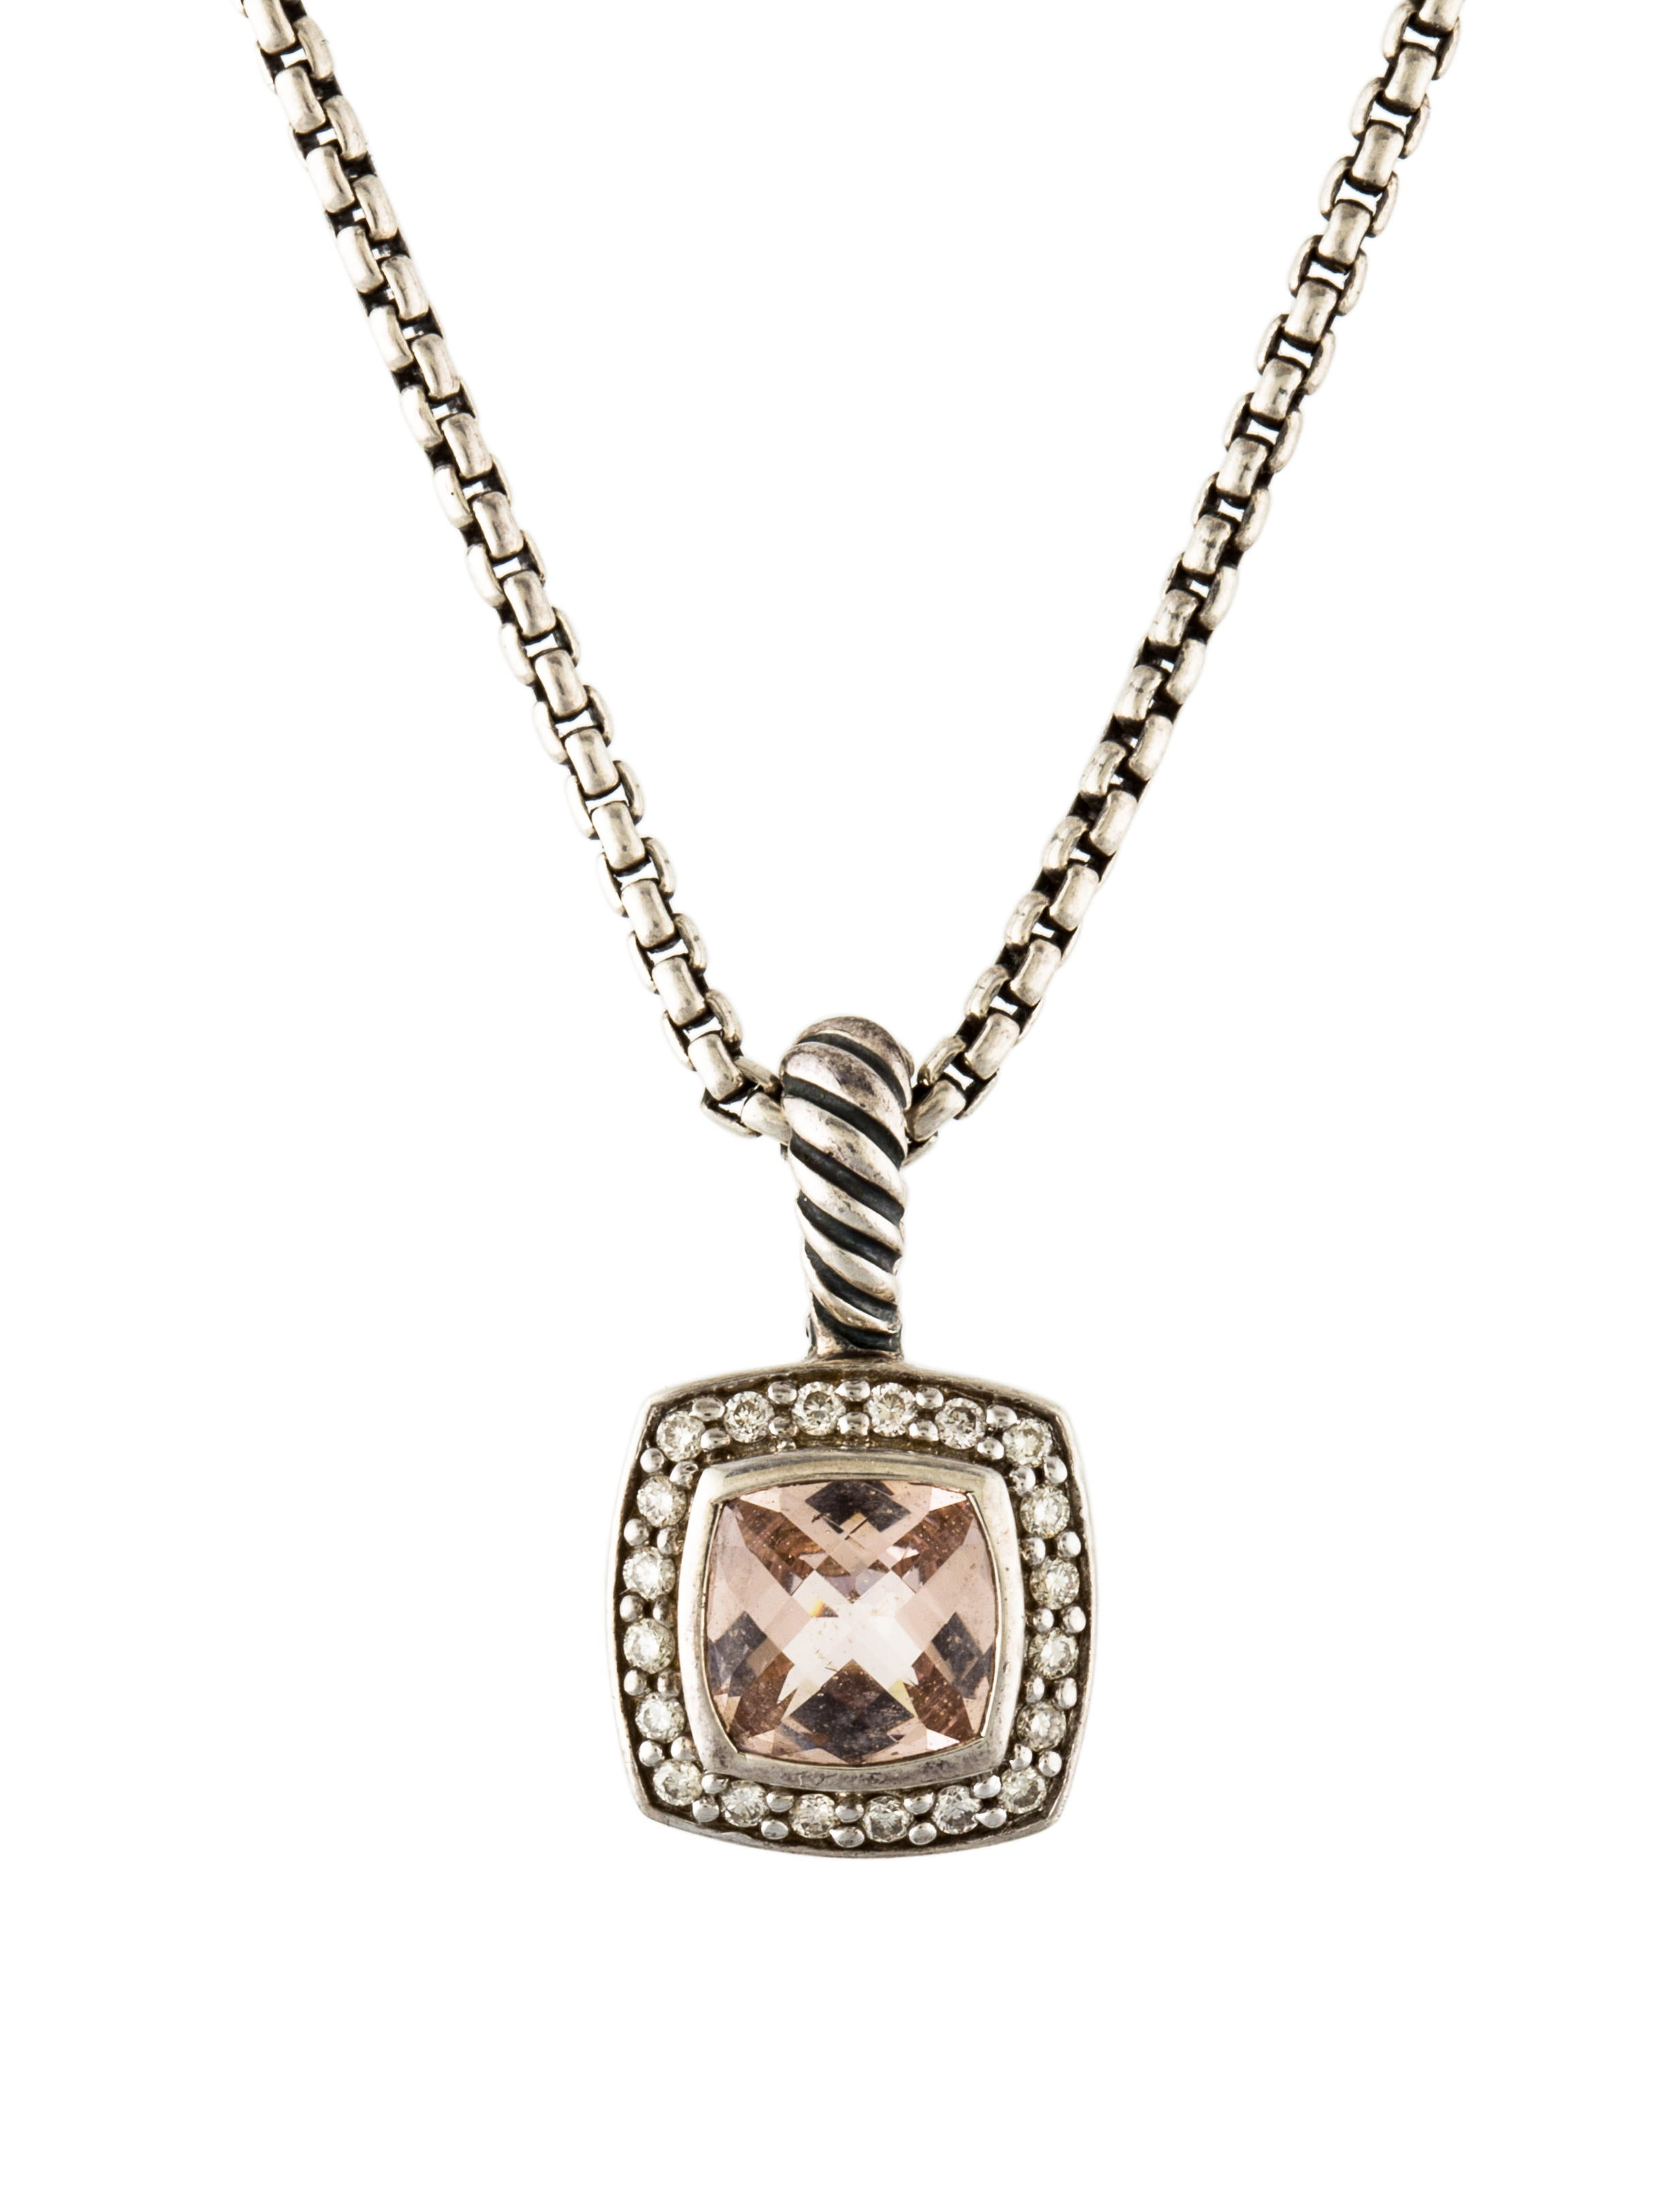 and halo accent prod diamore morganite wid diamond infinity heart pendant p necklace qlt hei gold in rose